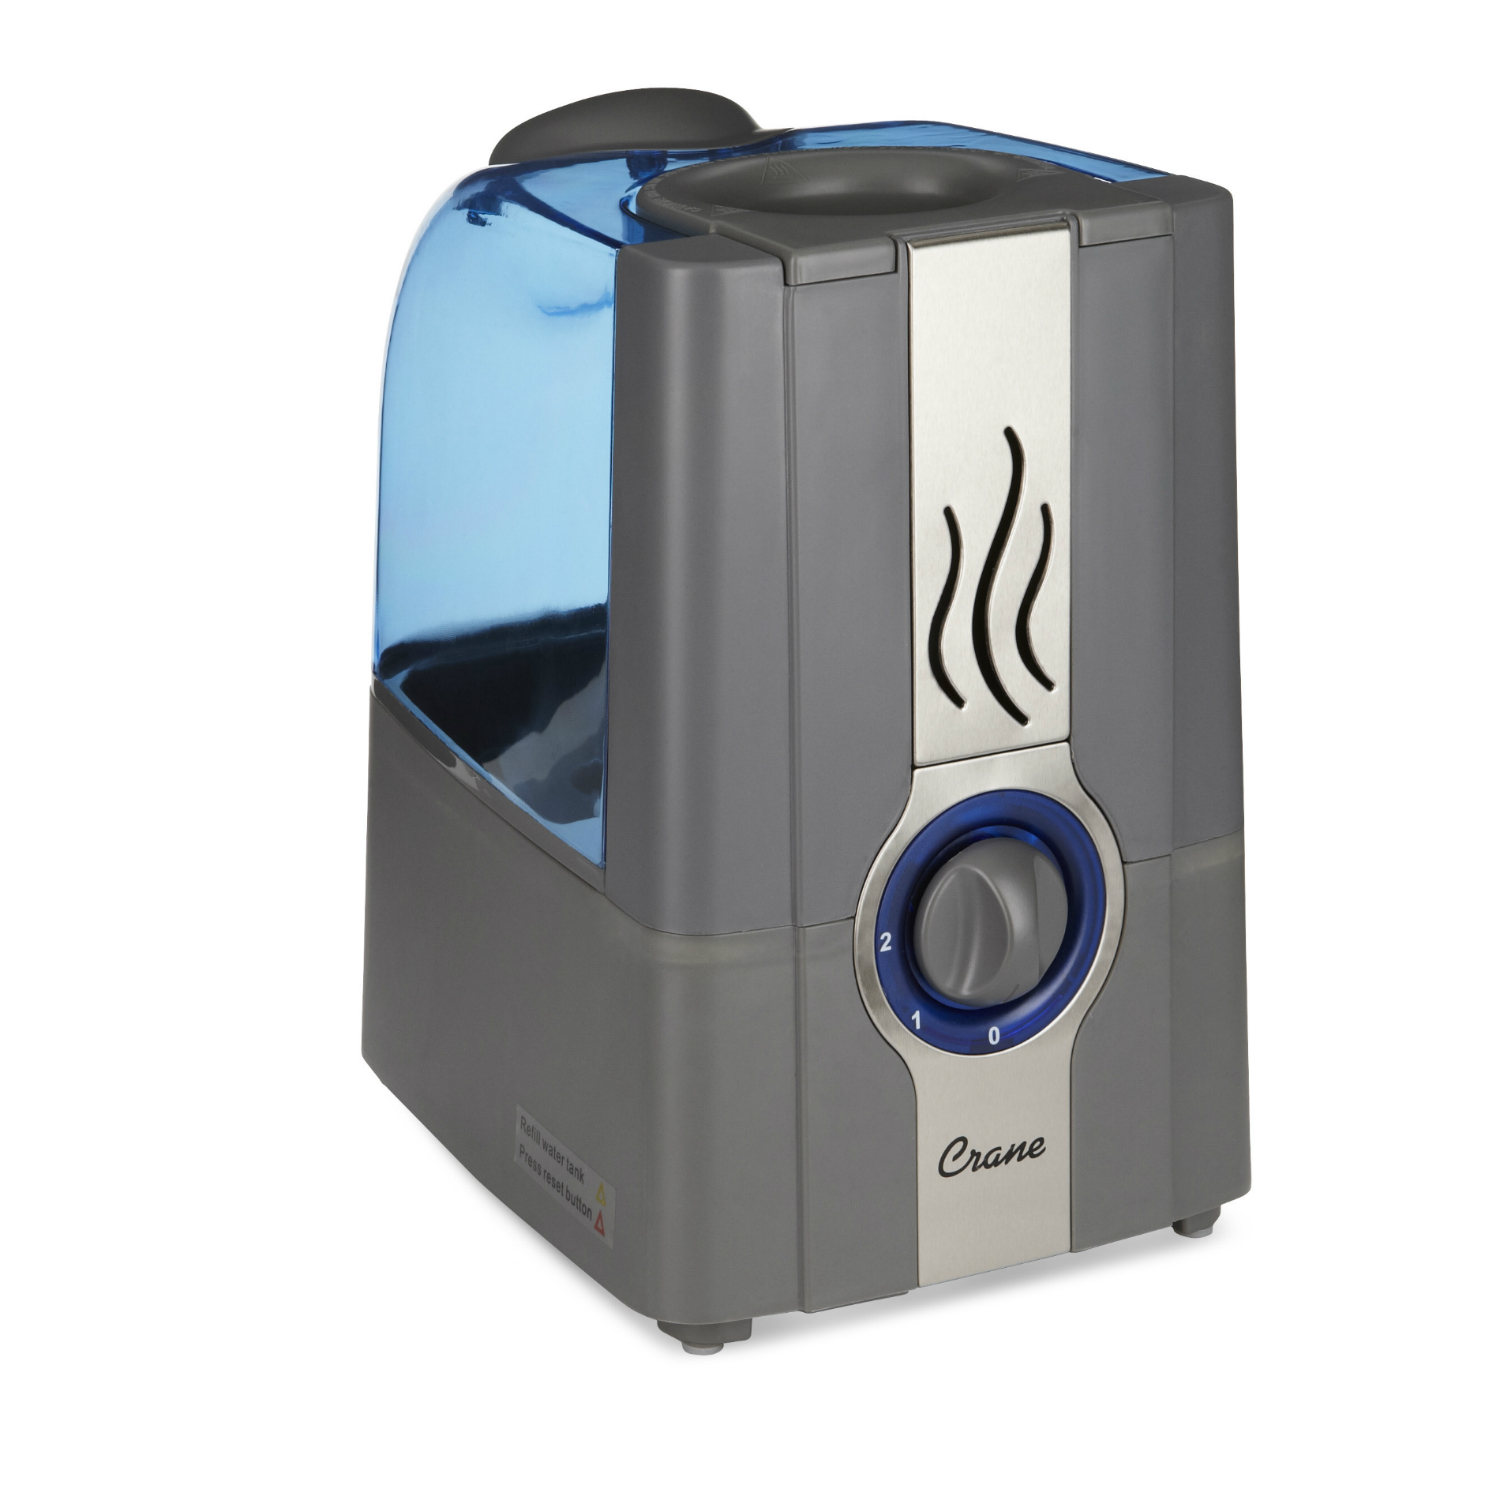 Crane Warm Mist Baby Humidifier With Tip Over Switch